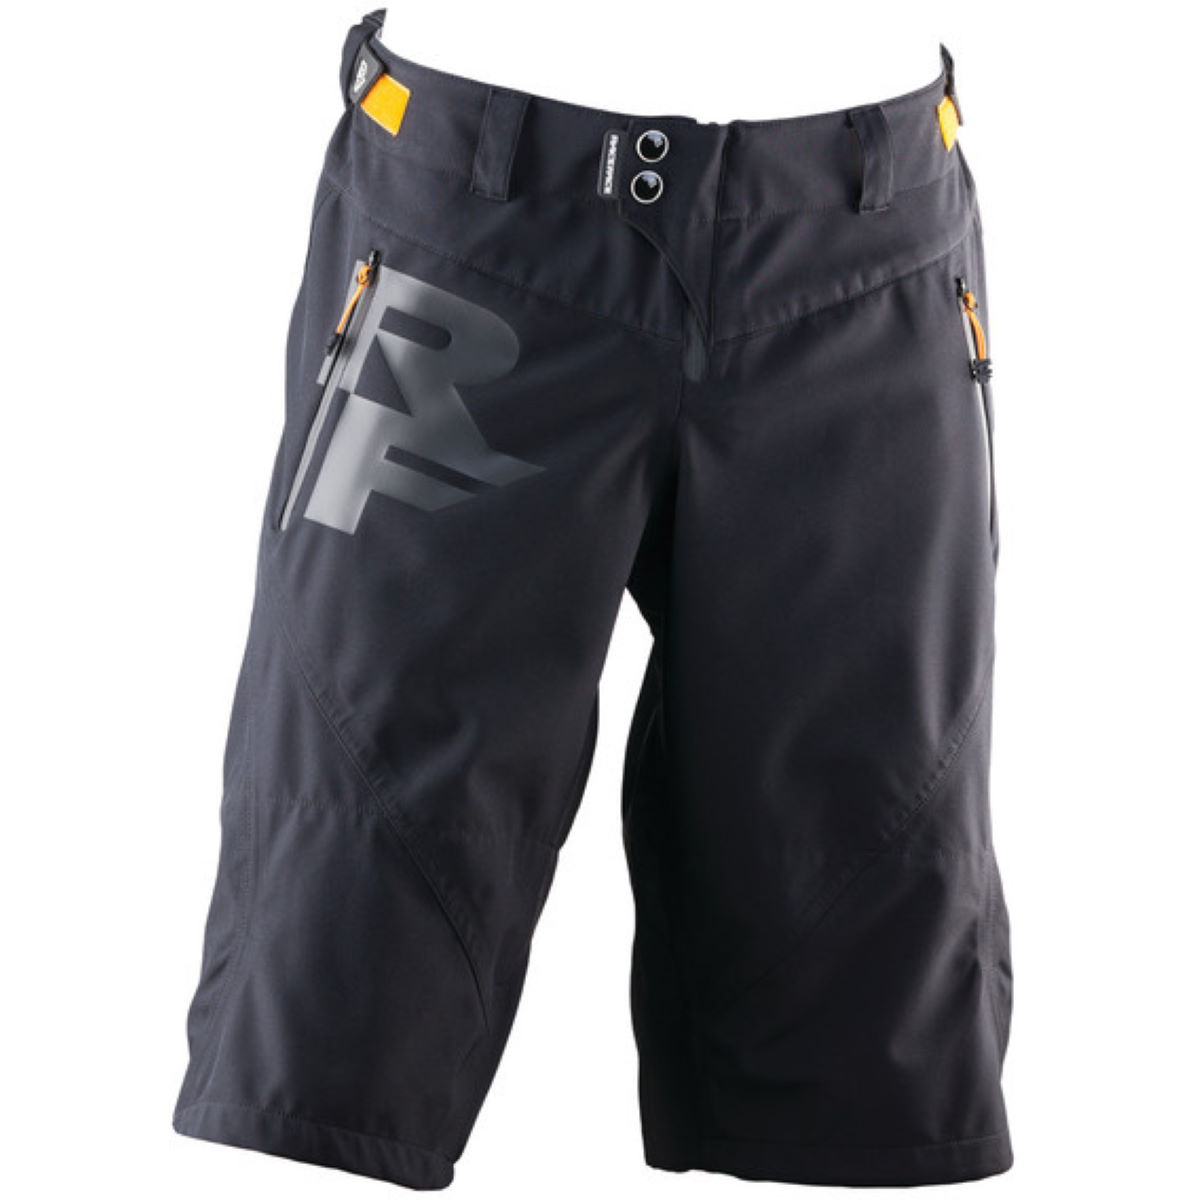 Short Race Face Agent (hiver) - XL Noir Shorts amples